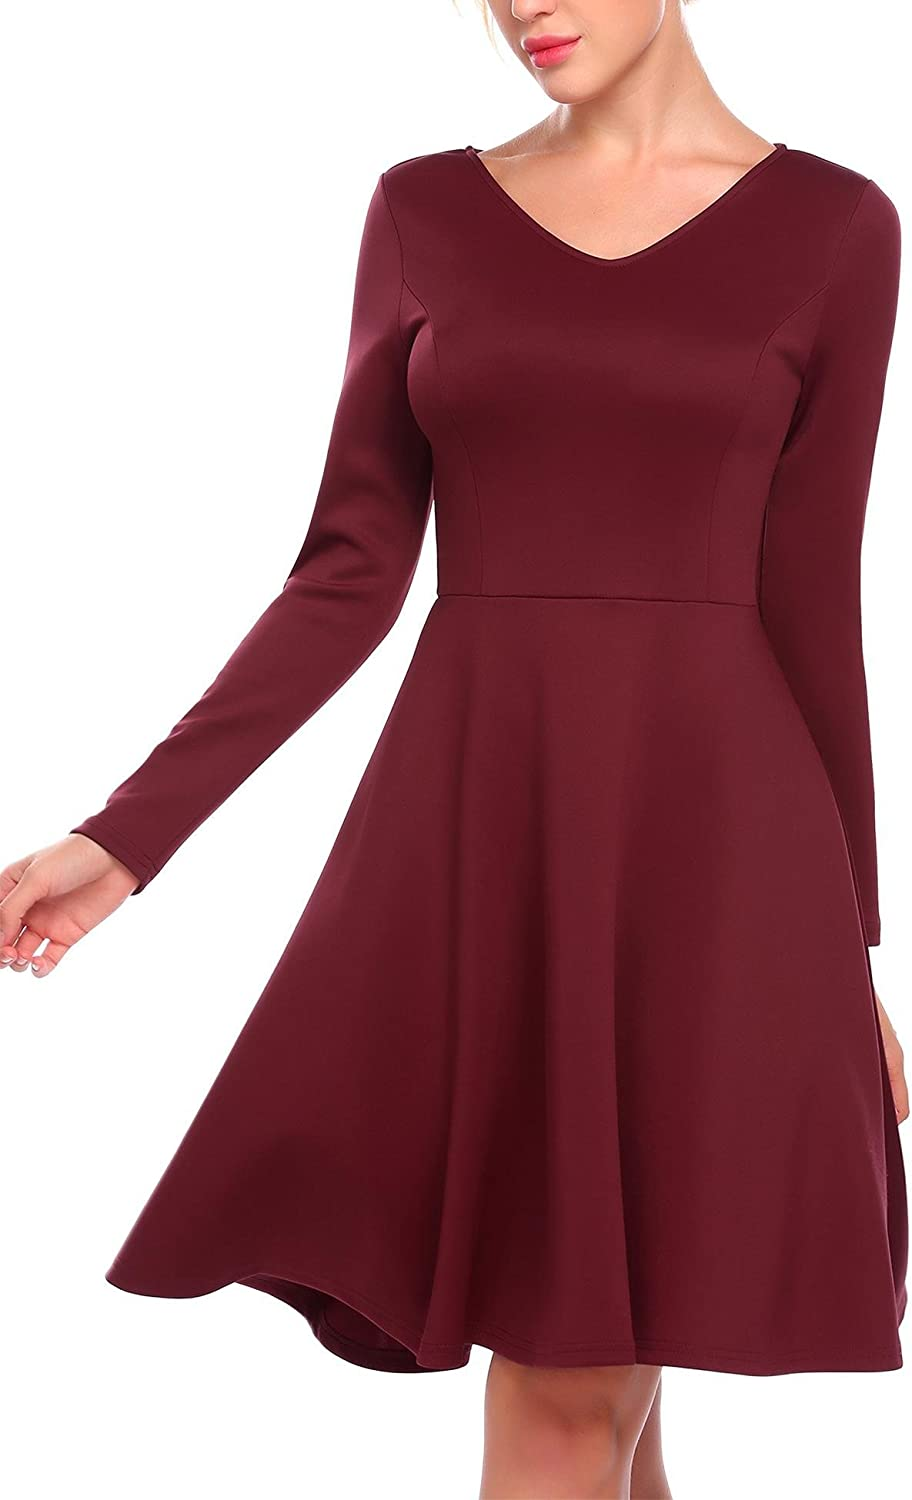 ANGVNS Women's VNeck Long Sleeve Pleated Solid color A Line Casual Flared Dress